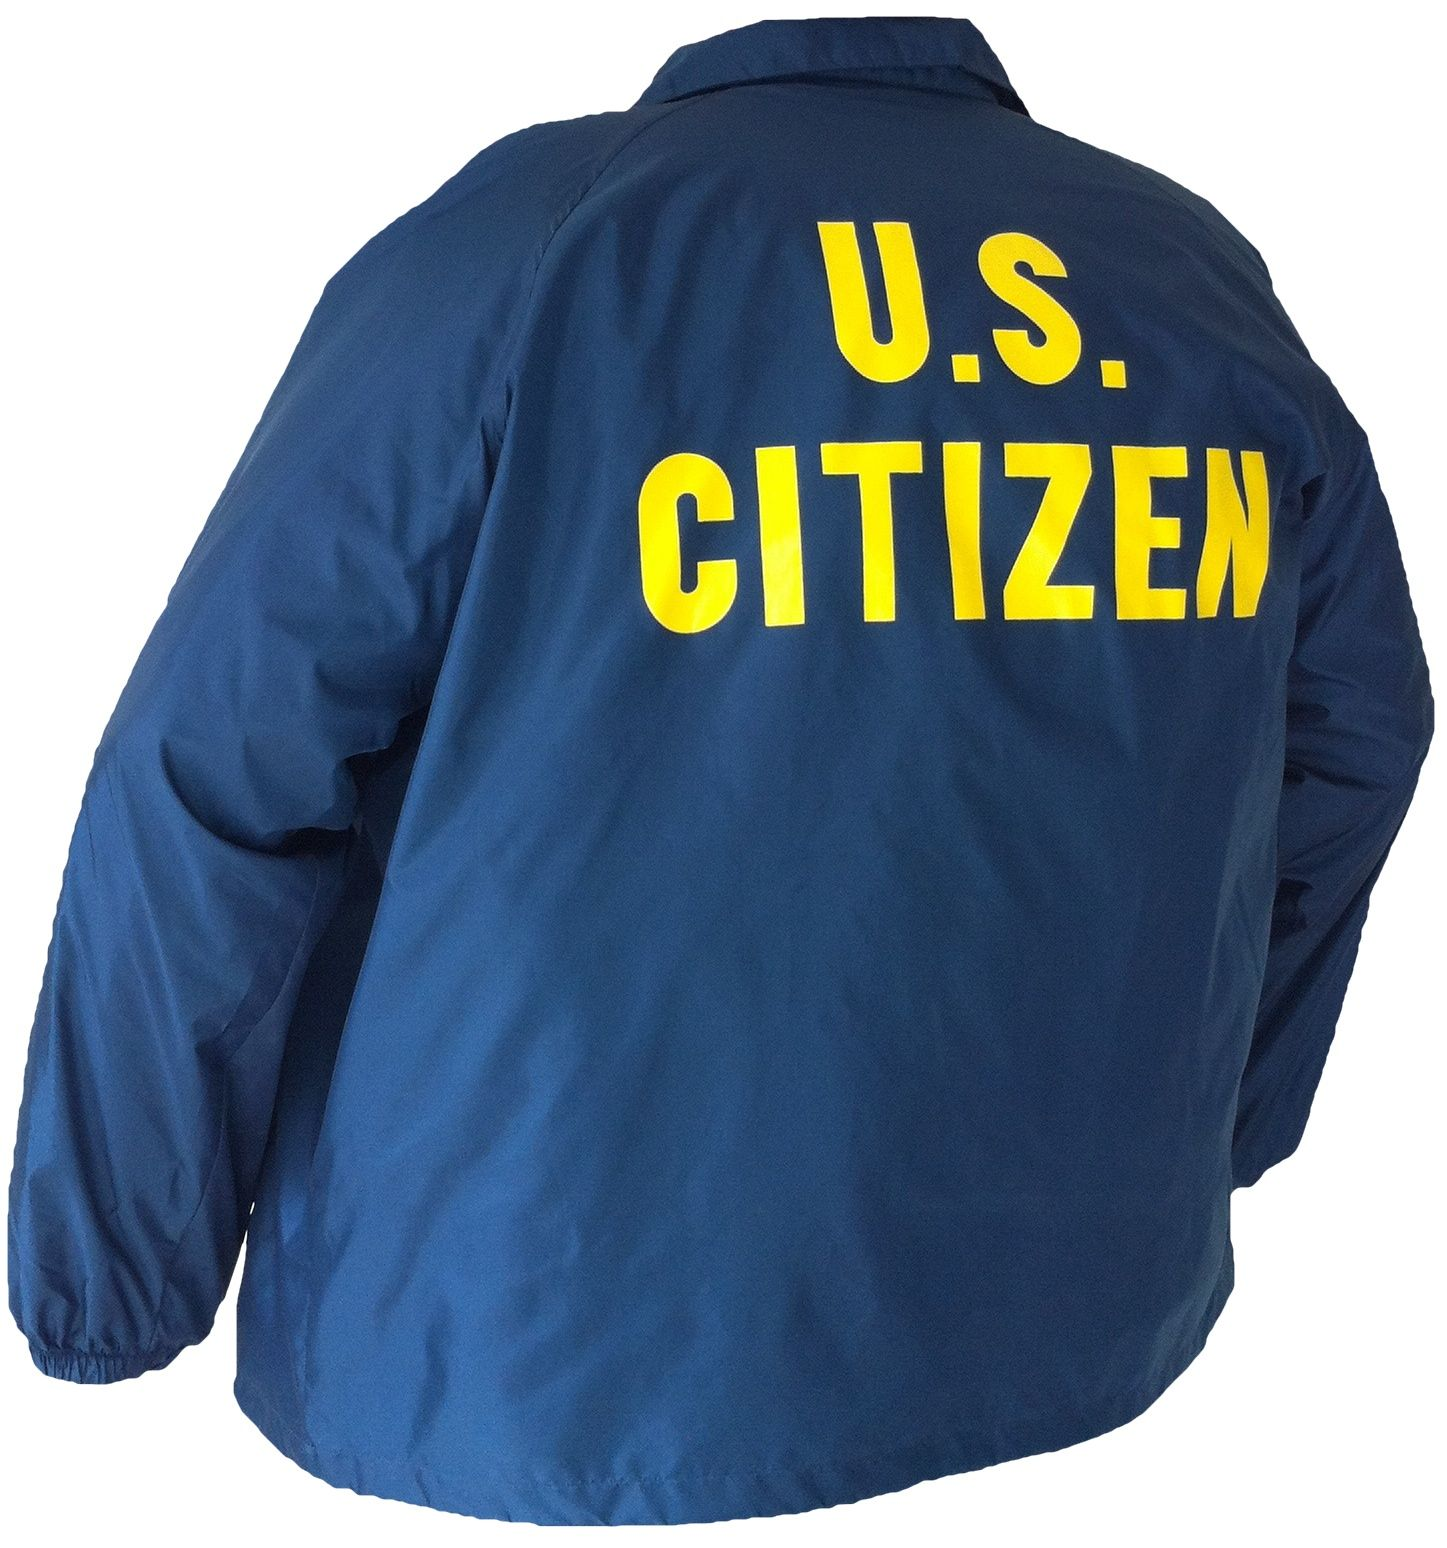 e2d5da2f9 fbi windbreaker jacket - Google Search | Investigation | Windbreaker ...